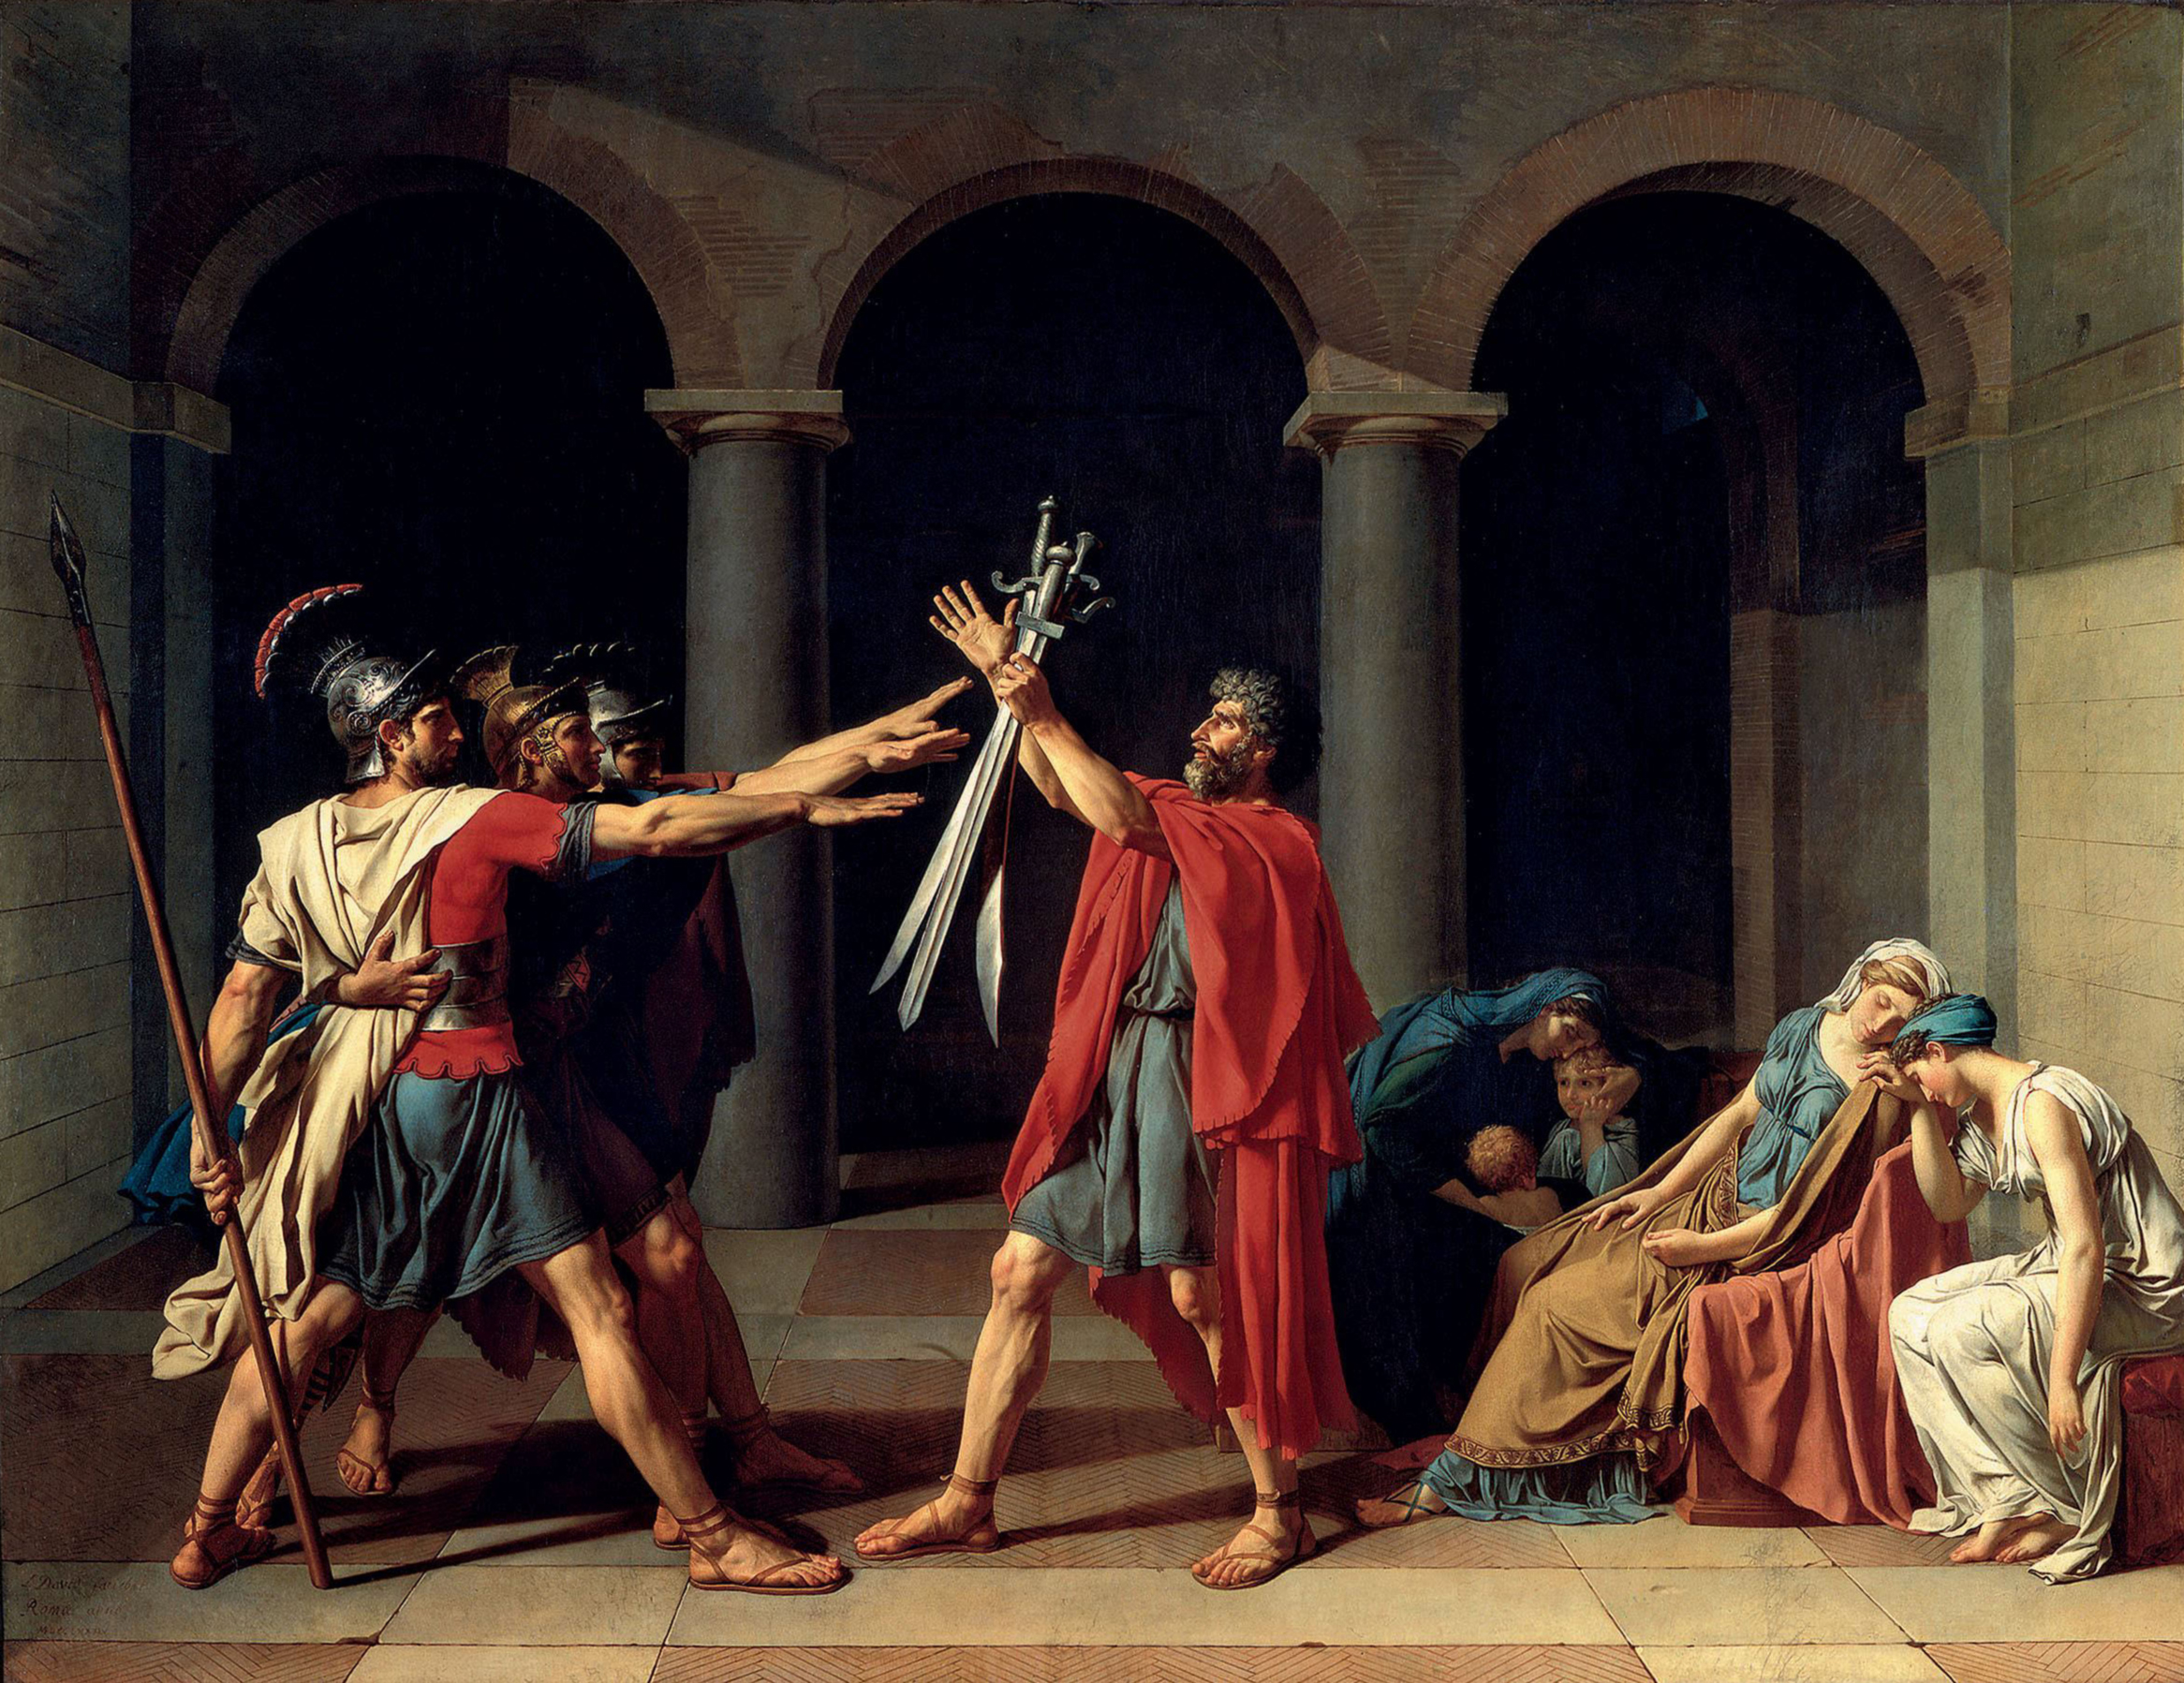 Le Serment des Horaces, Jacques-Louis David